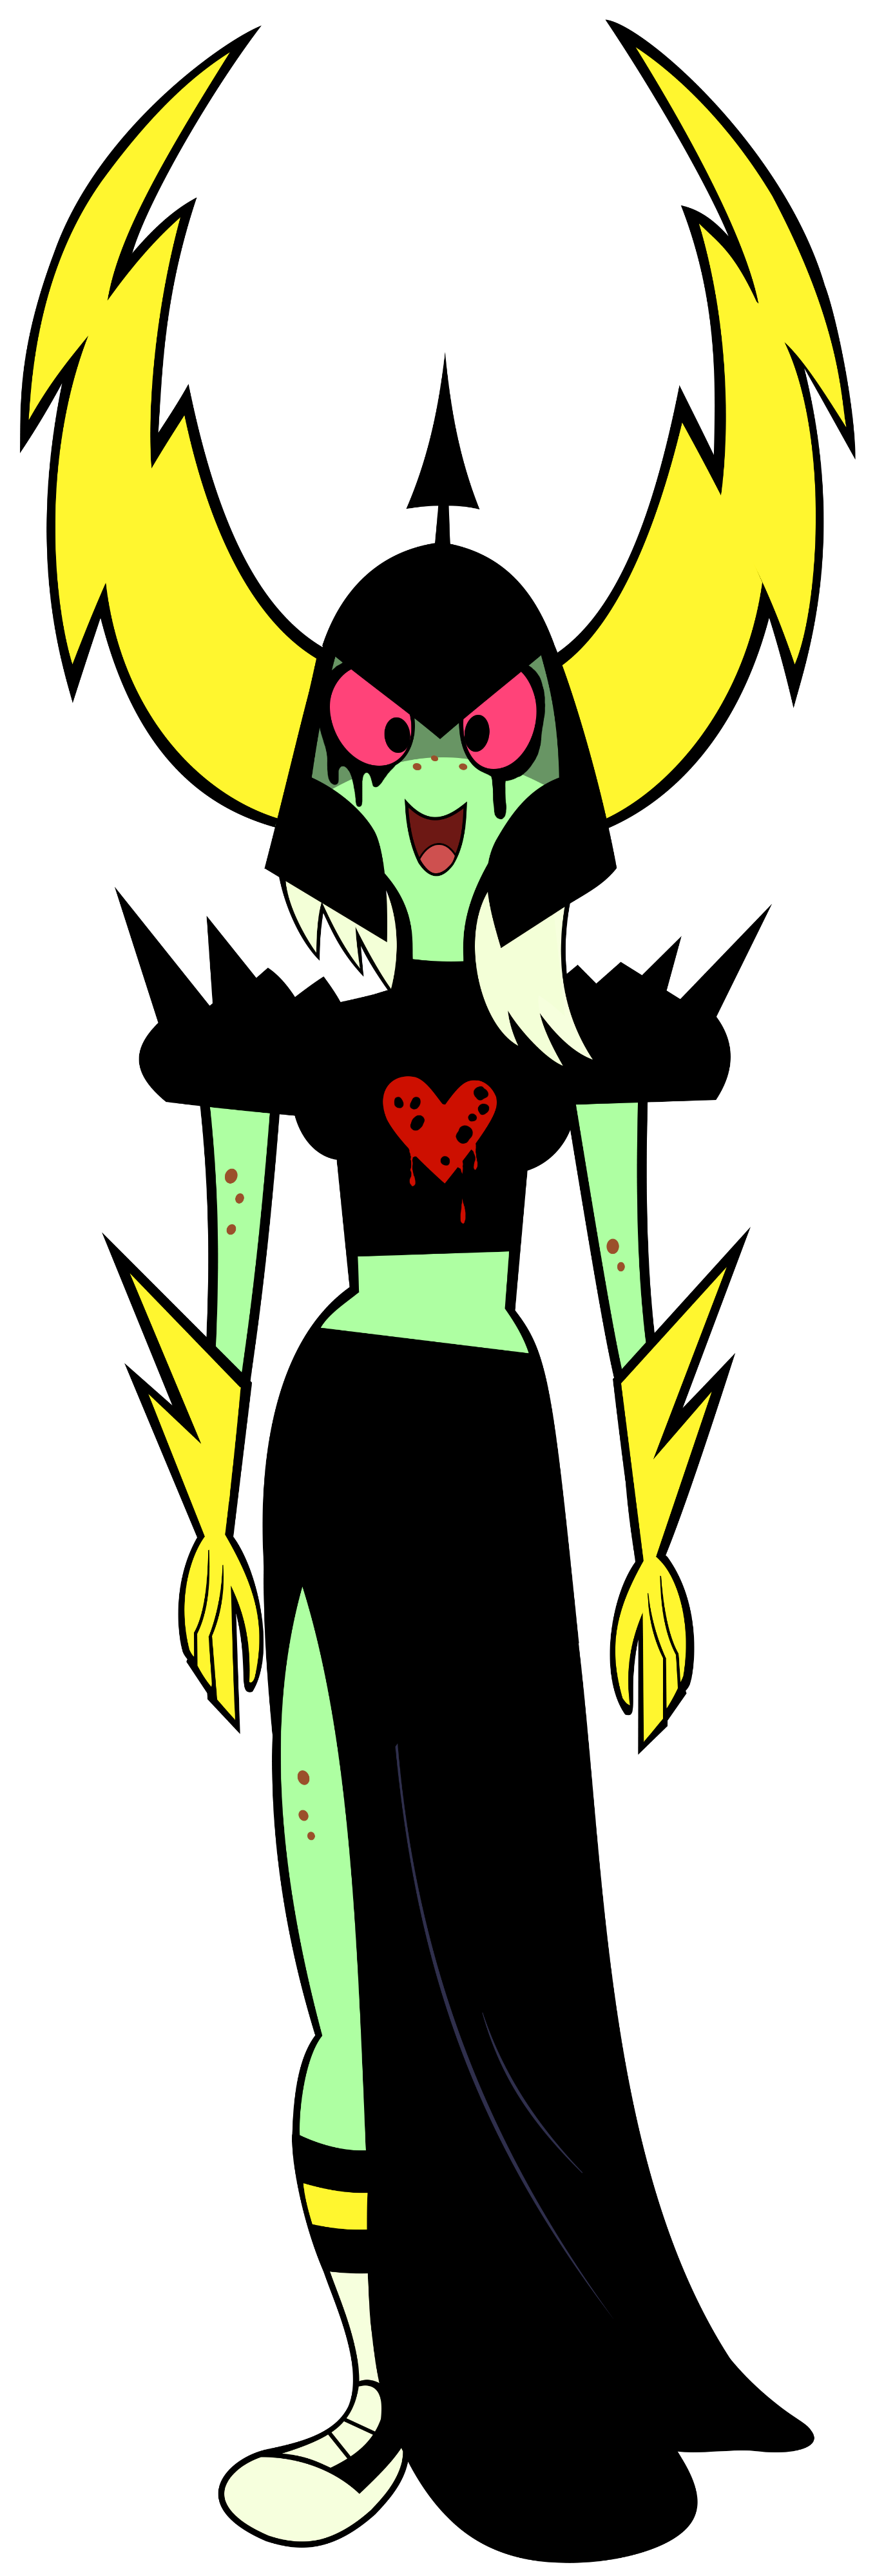 Lord Dominator Wander Over Yonder Wiki Fandom Powered By Wikia